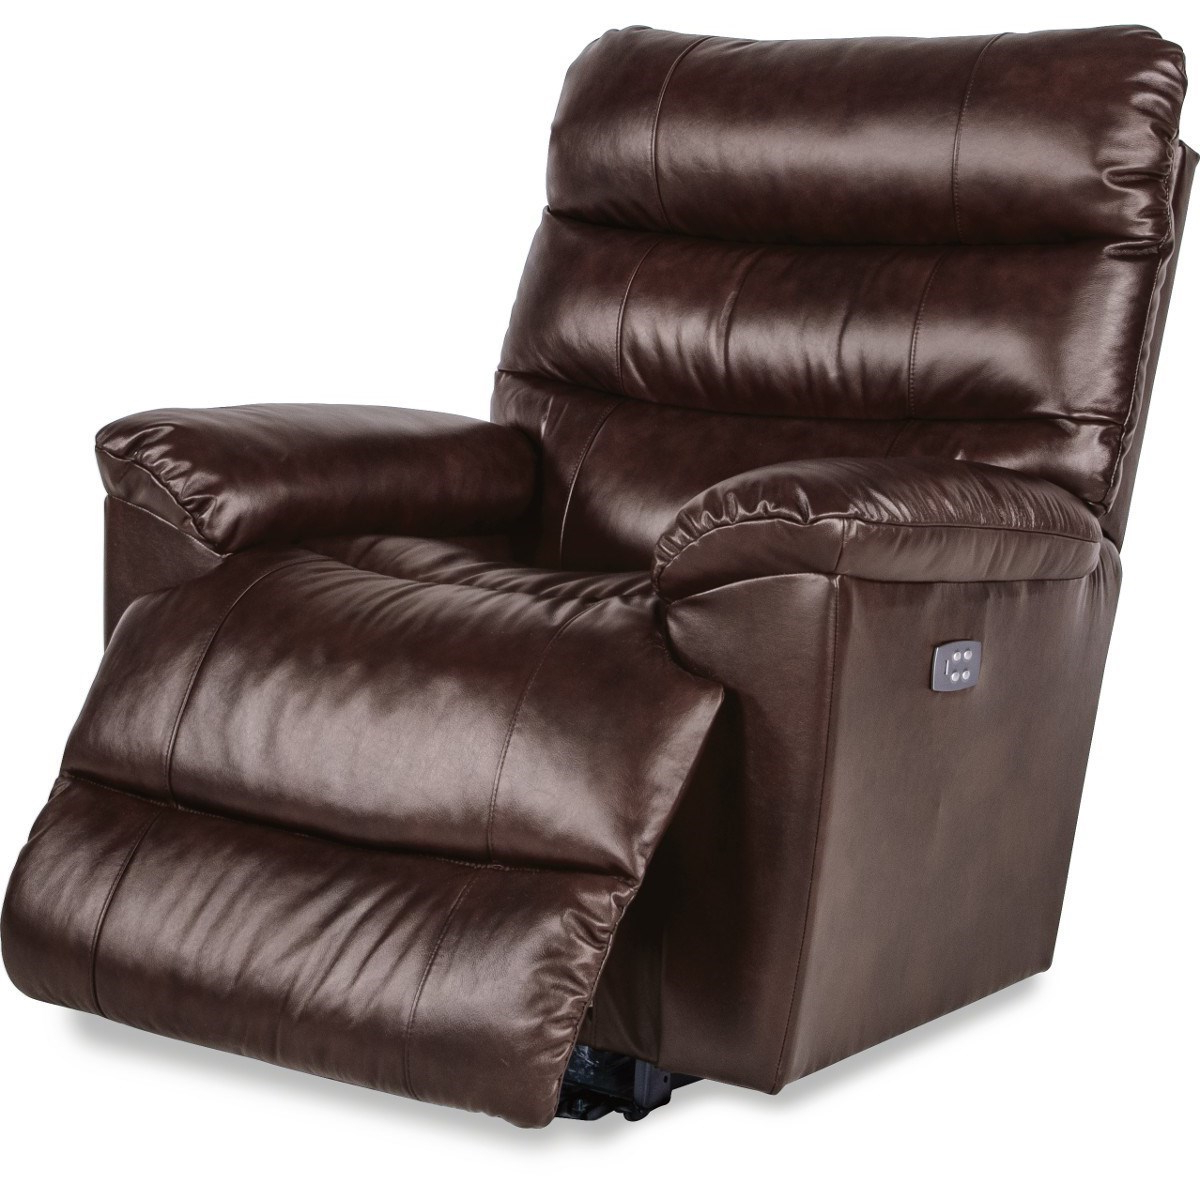 Marco Leather Power Reclining Sofas For Most Recently Released La Z Boy Recliners Marco Power Recline Xr Rocking Recliner (View 20 of 20)